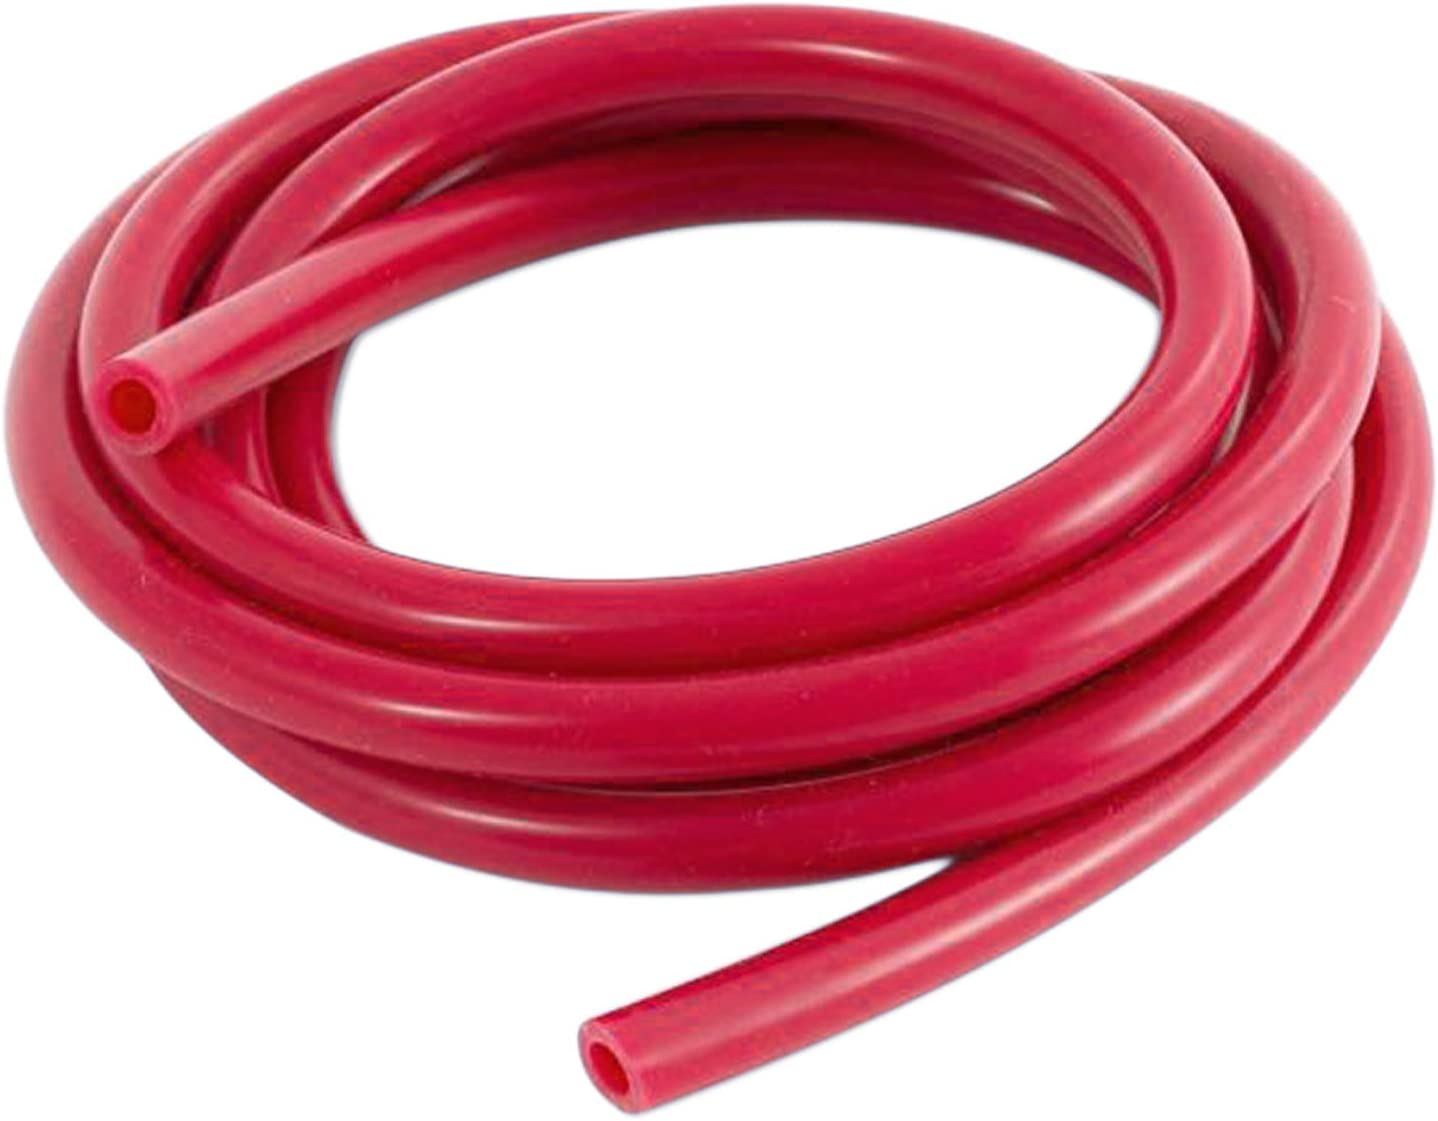 Ronteix Universal High Performance Vaccum Silicone Hose Tubing Line 5 Feet Length(2MM(1/12 Inch), Red)